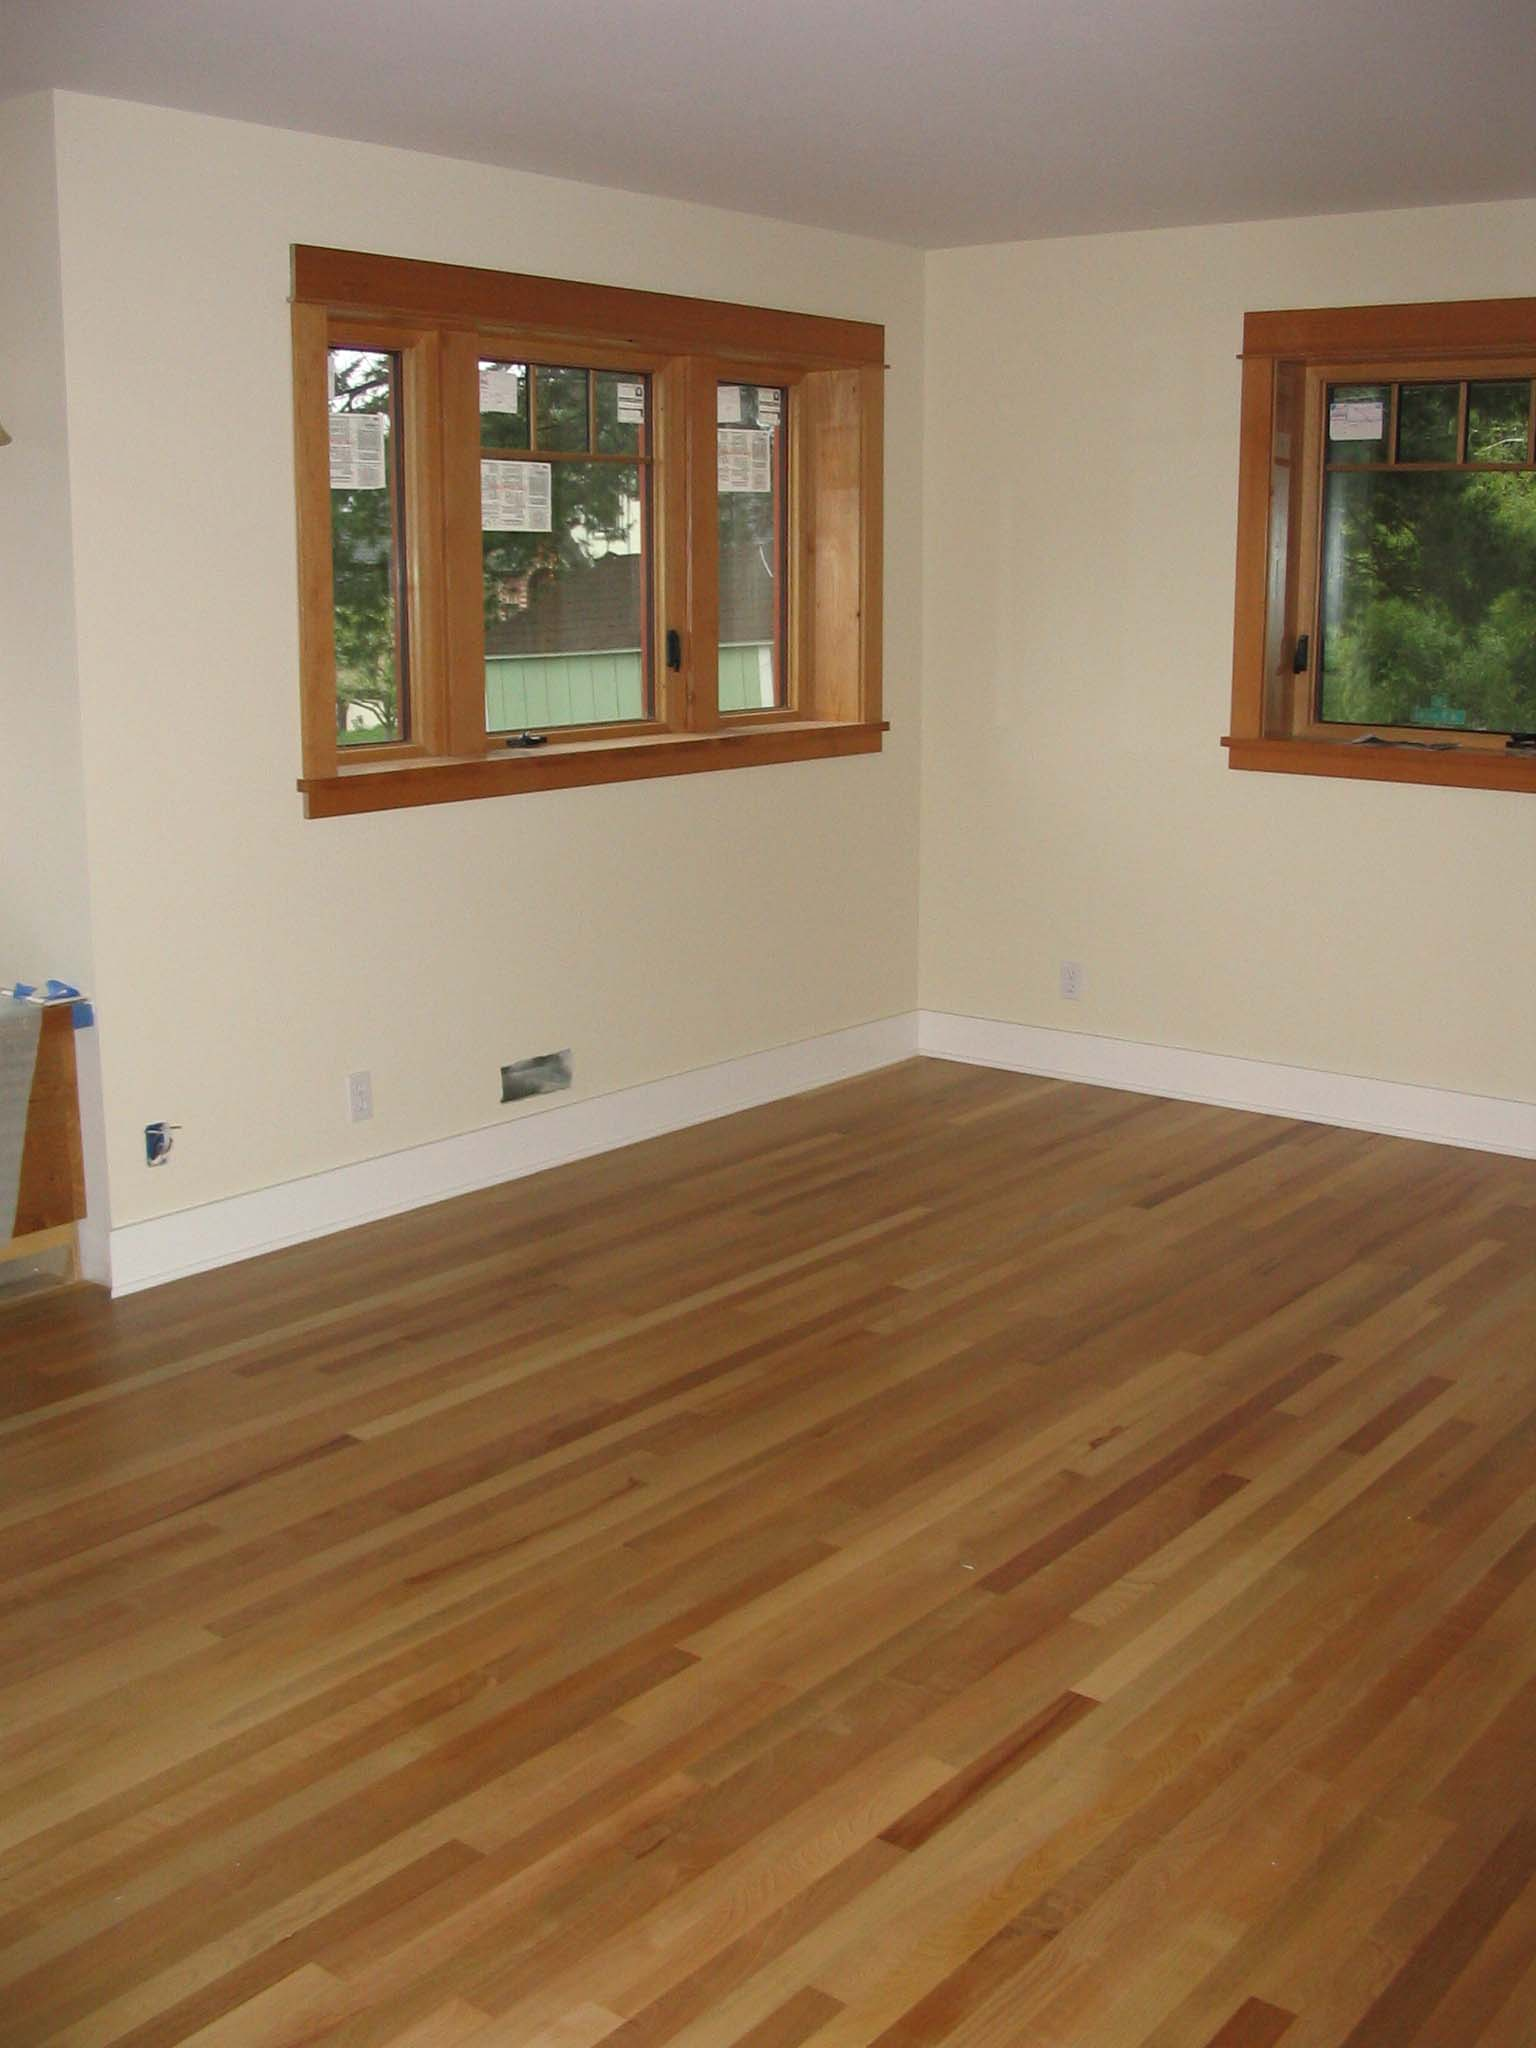 Living room floor & windows.jpg